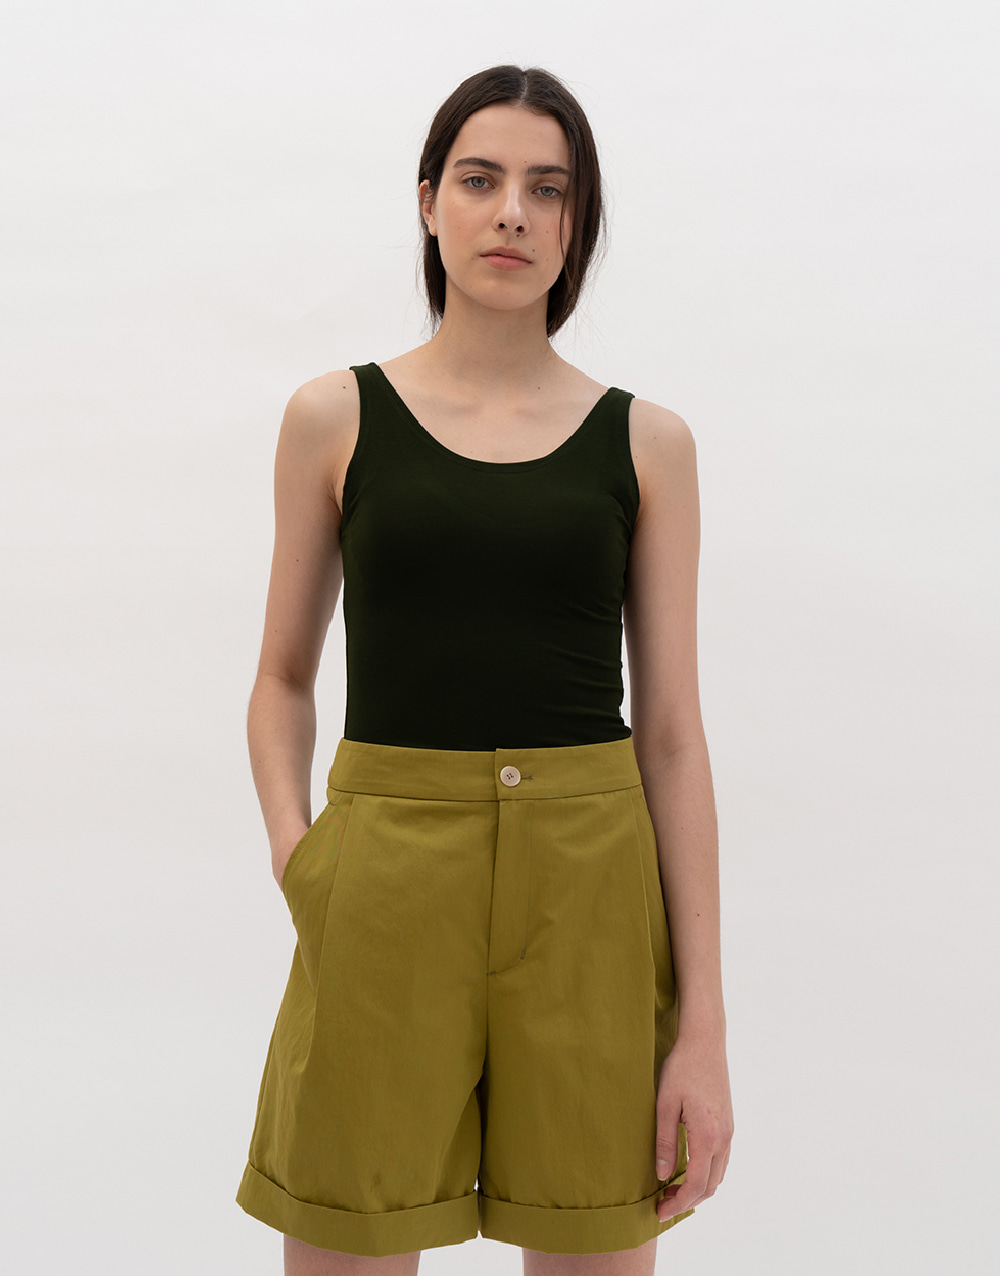 GBH APPAREL ADULT Lyocell Sleeveless Top PINE GREEN